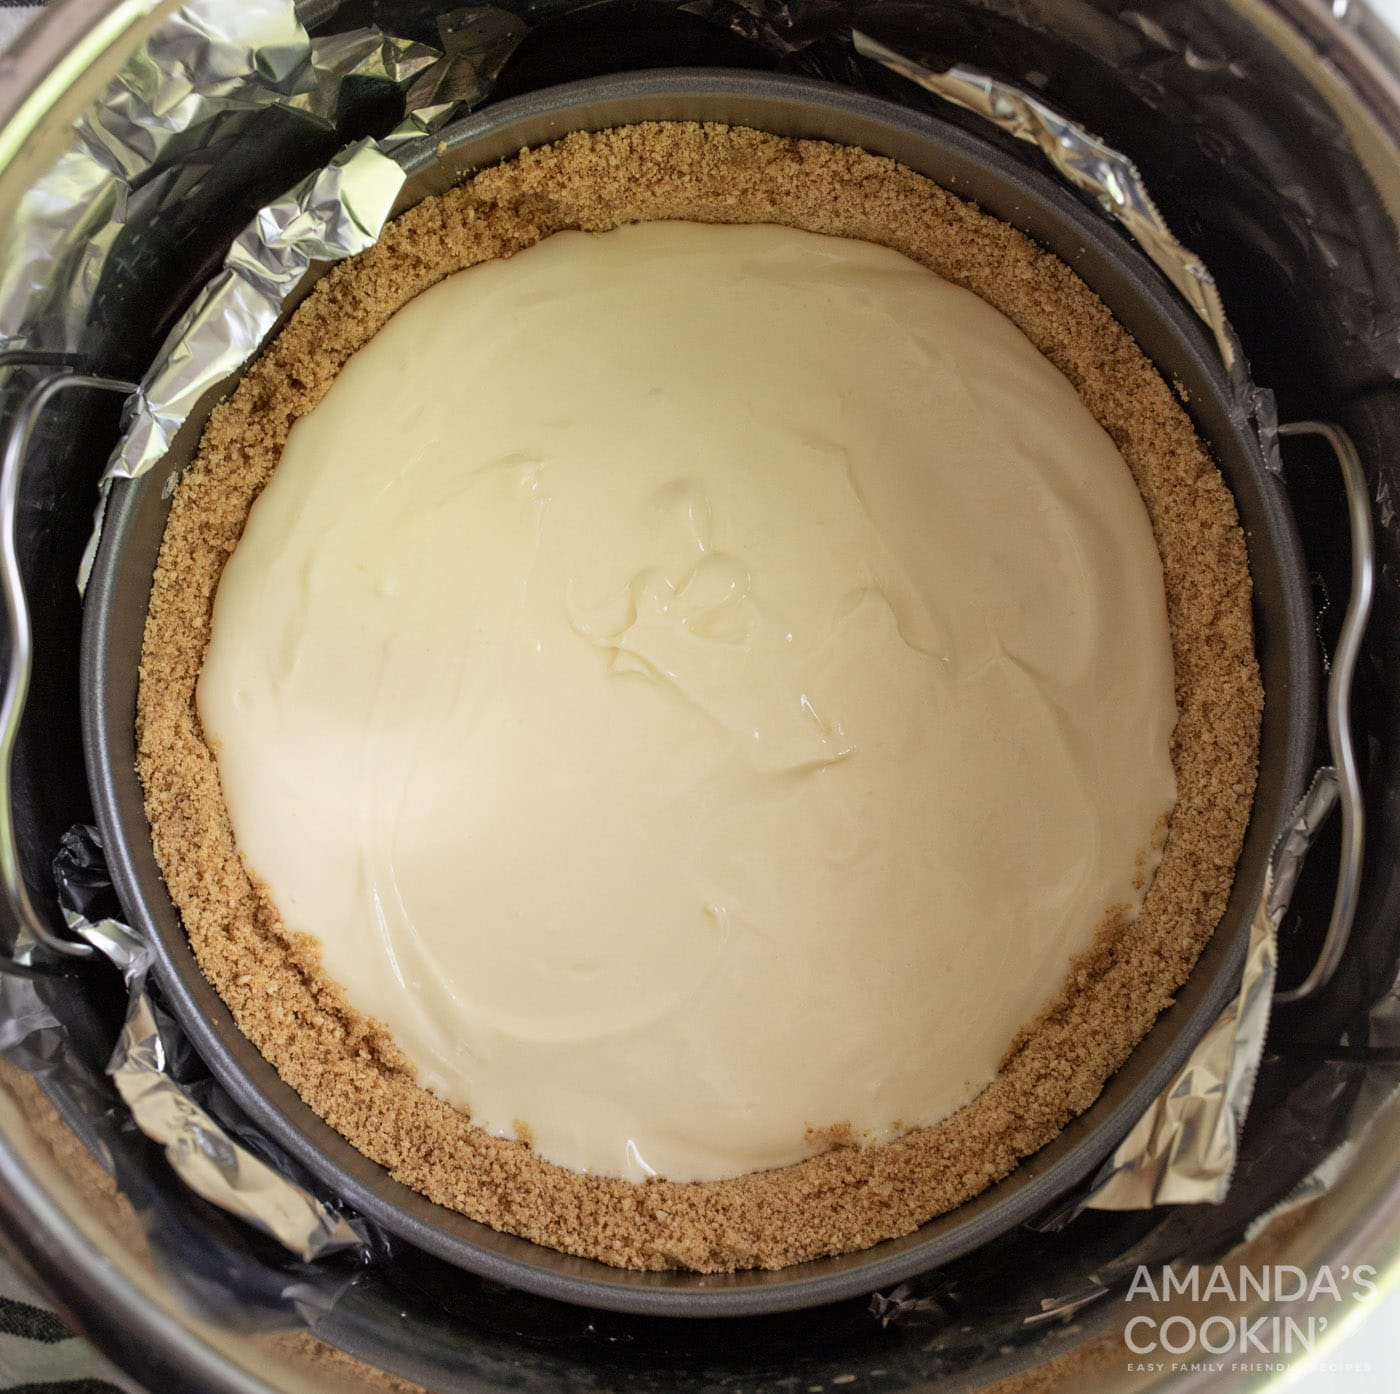 cheesecake on trivet in instant pot